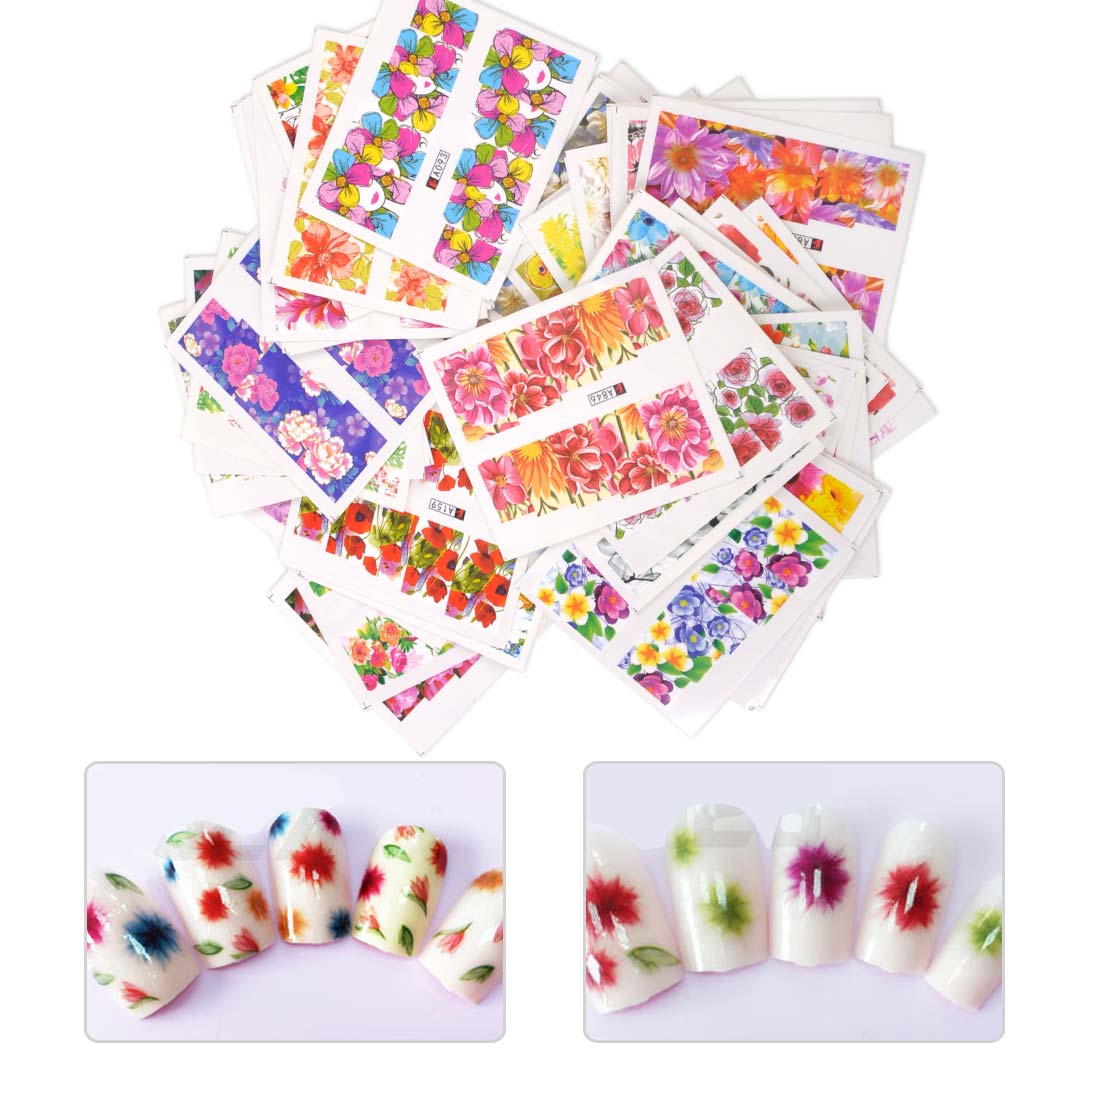 New Fashion 50 Sheets Mixed Design Beauty Flowers Nail Sticker Water Transfer Nails Art Decoration Stickers Decals DIY Manicure ds300 2016 new water transfer stickers for nails beauty harajuku blue totem decoration nail wraps sticker fingernails decals